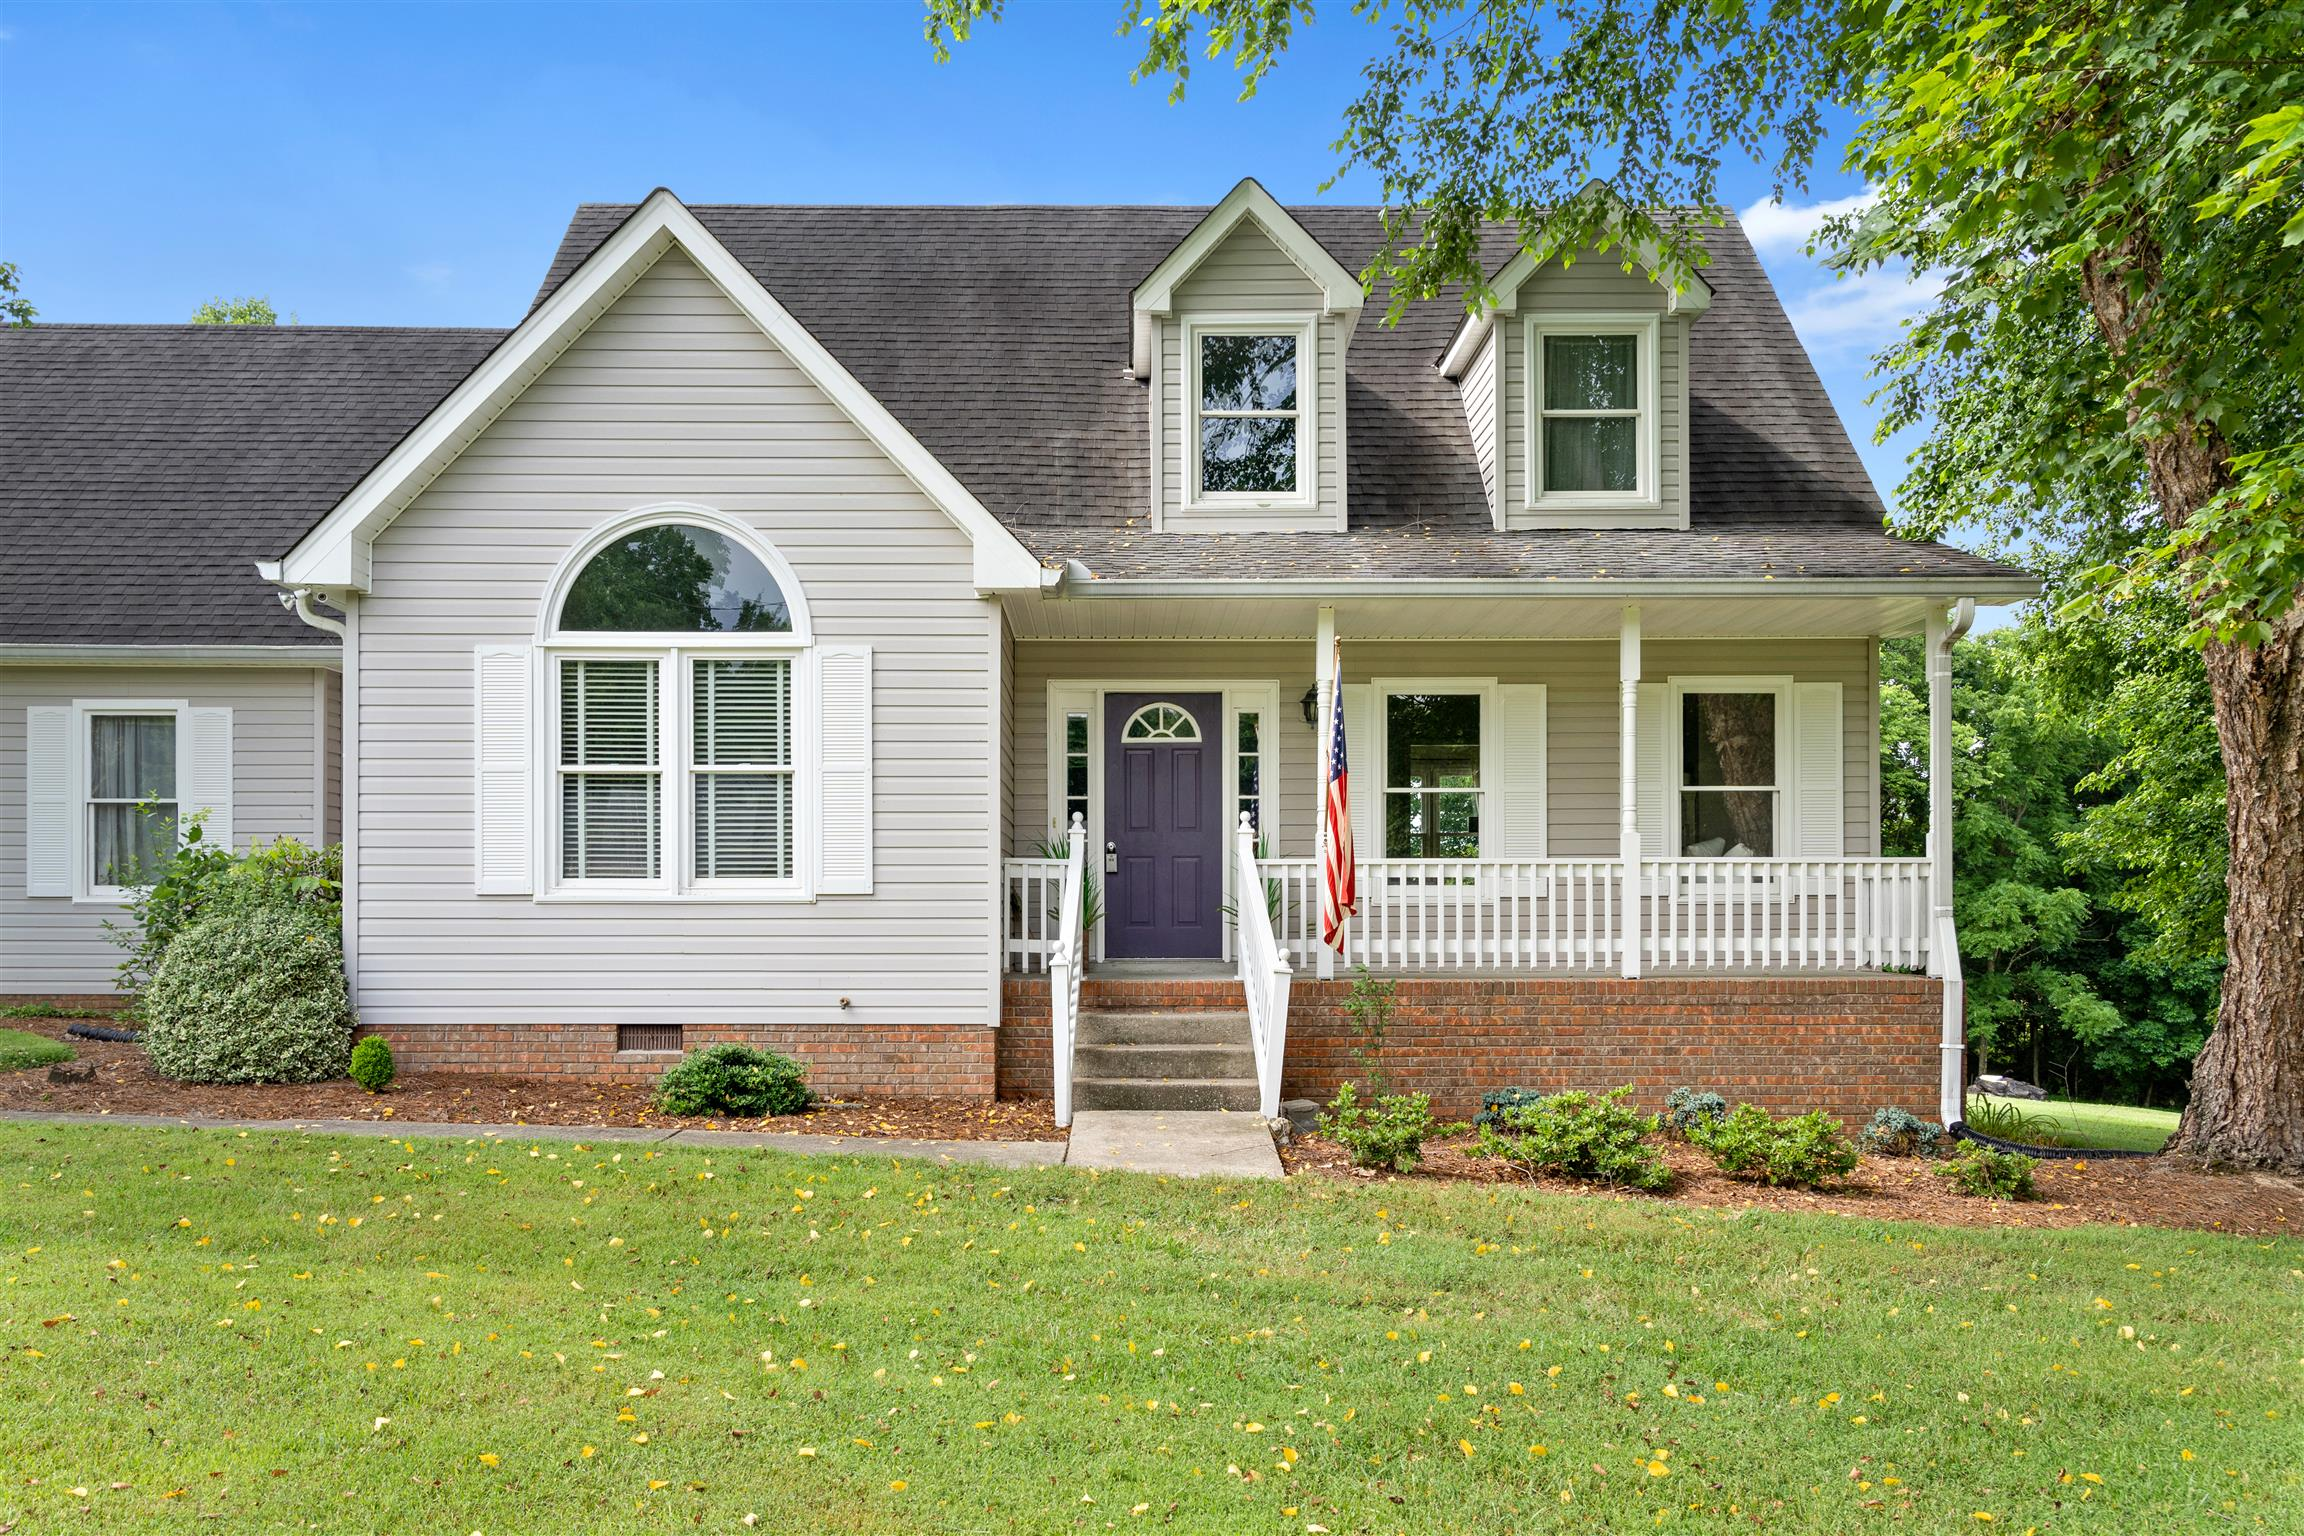 5075 Highpoint Rd, Pleasant View, TN 37146 - Pleasant View, TN real estate listing